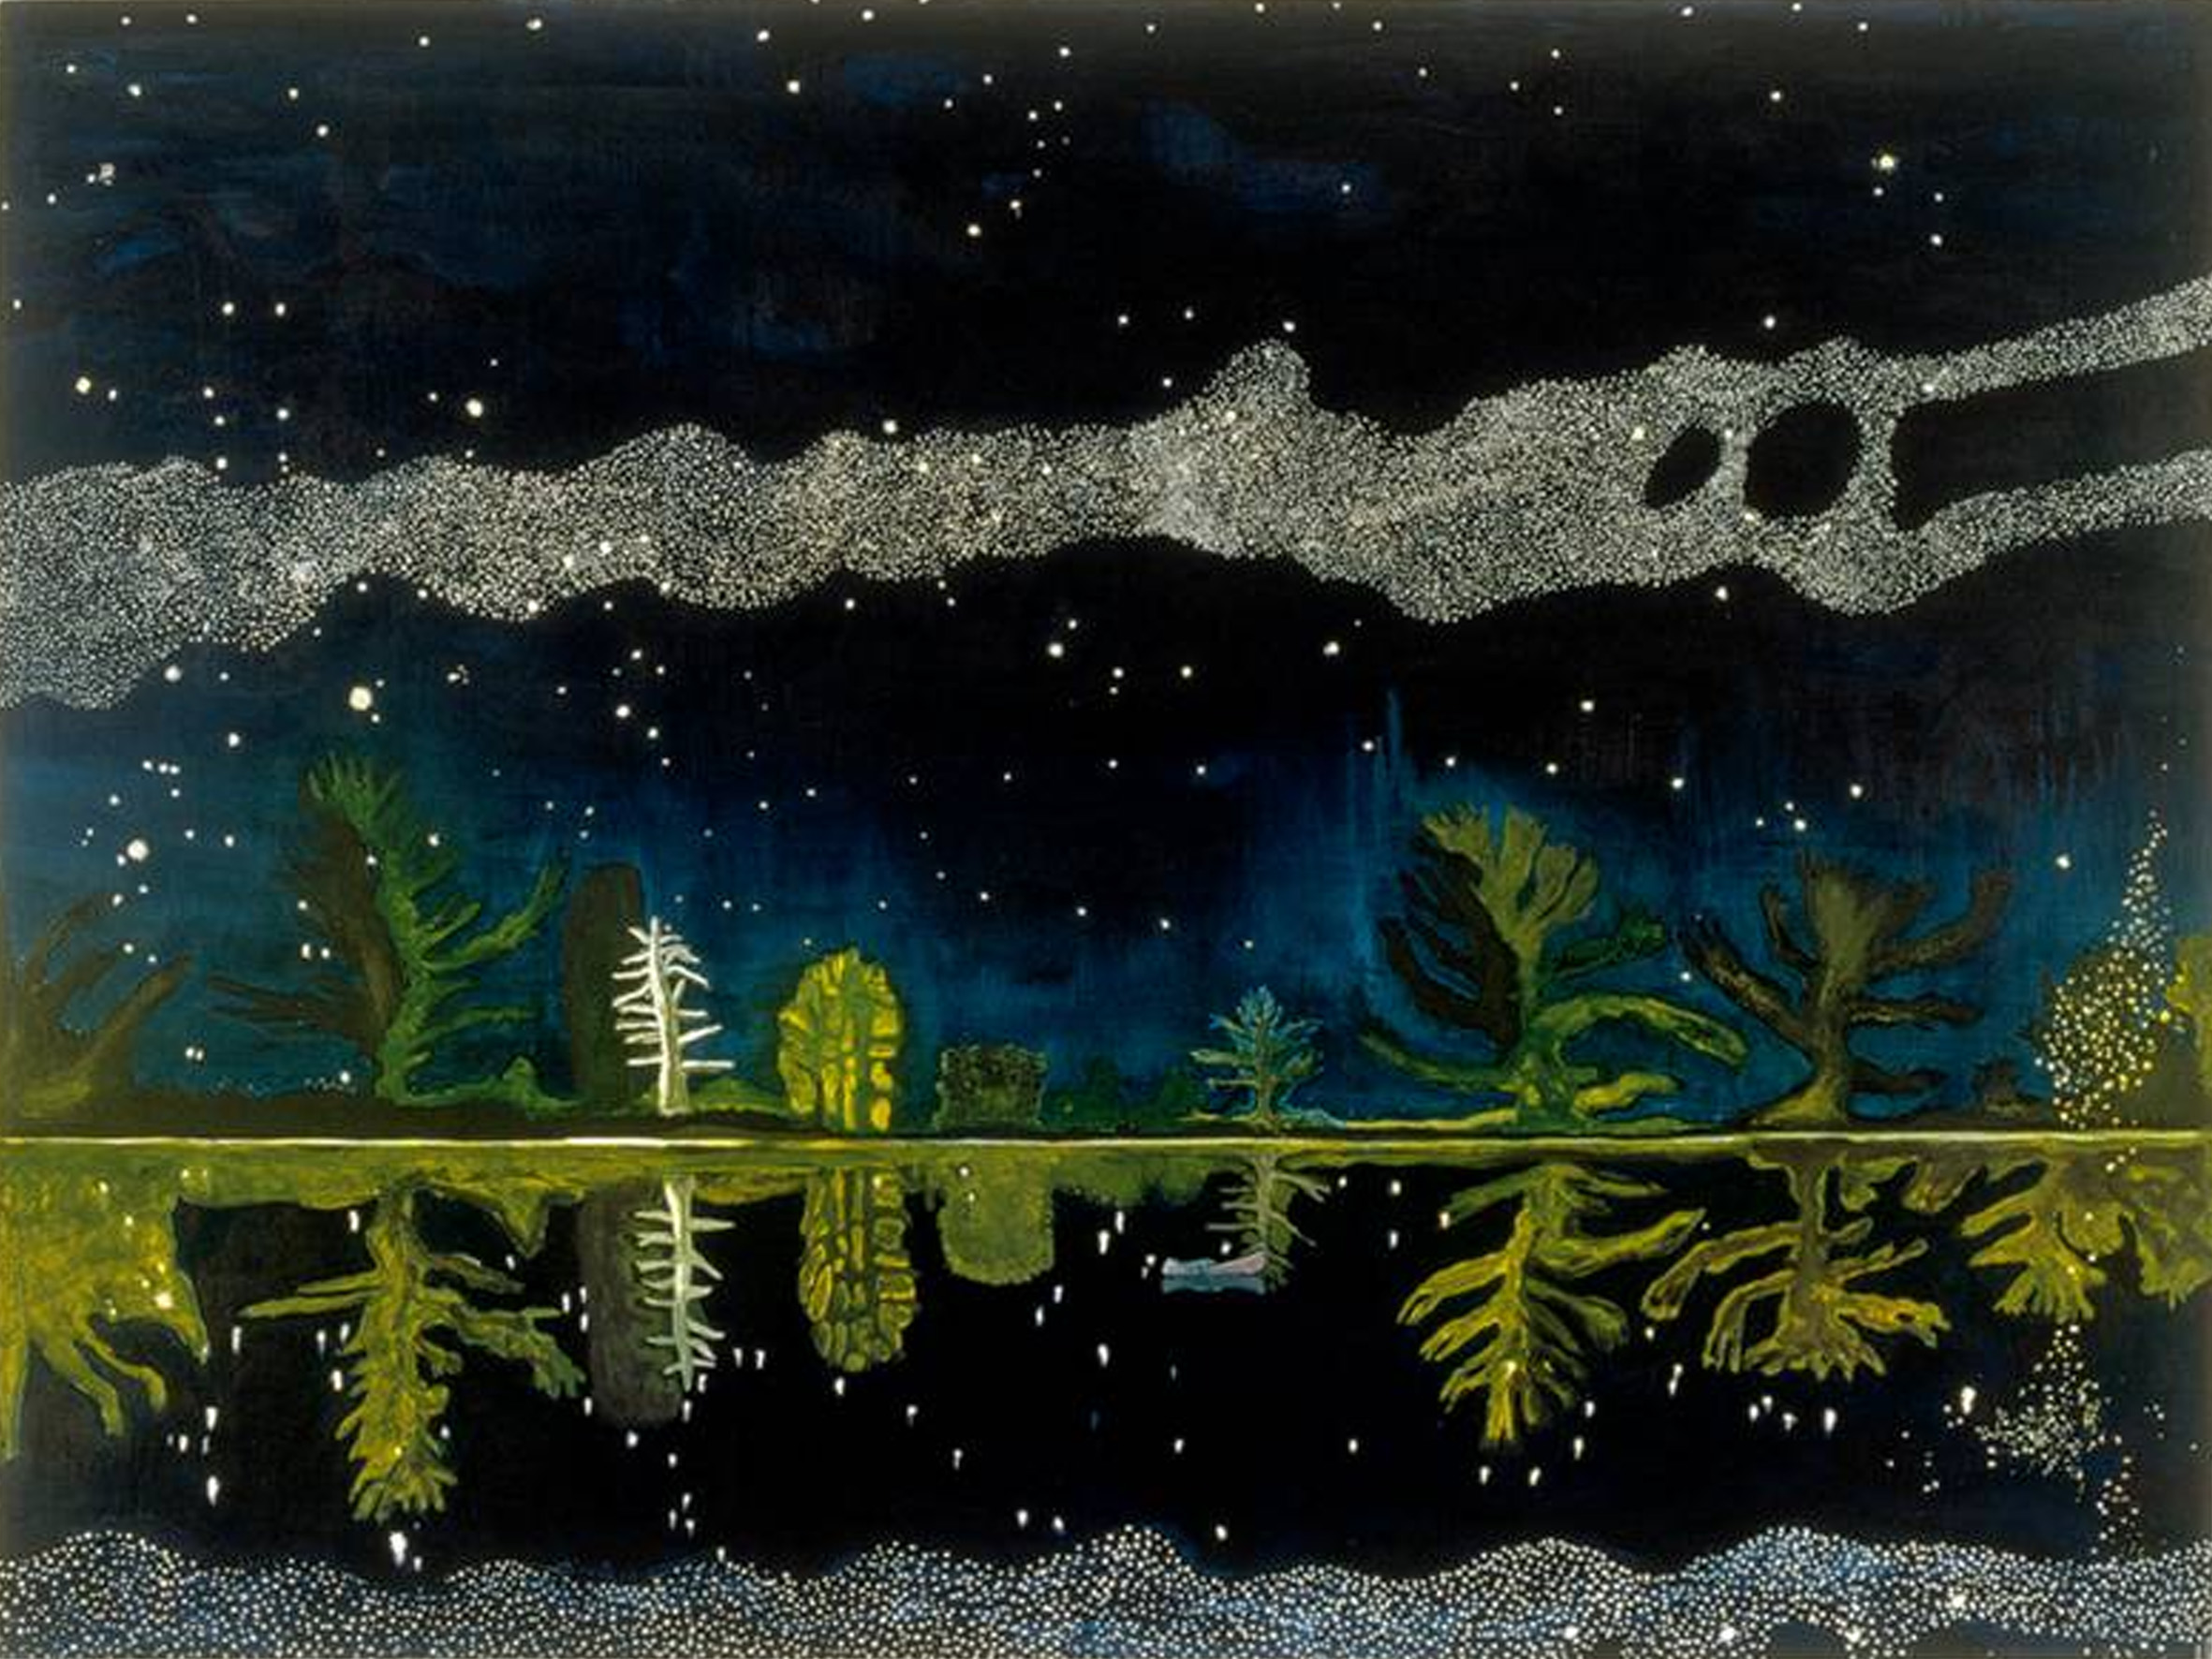 Peter Doigt (copyright)